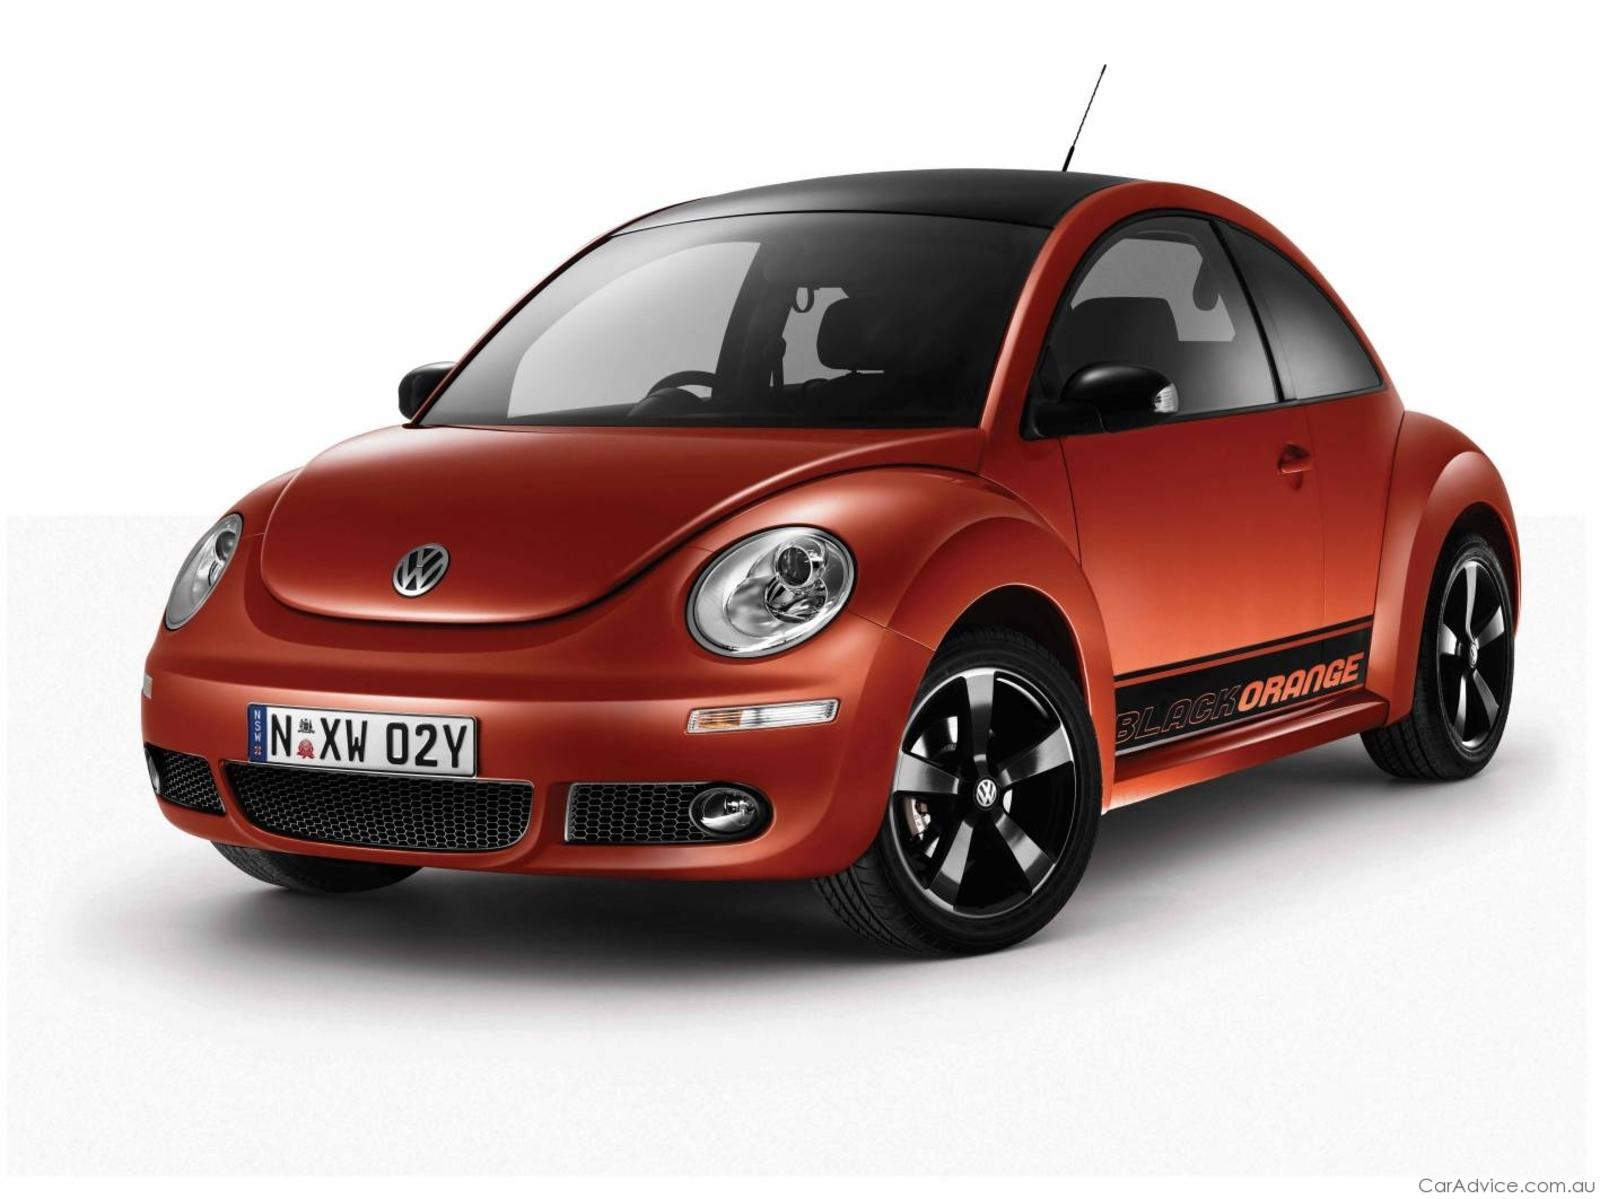 2010 volkswagen new beetle blackorange review gallery. Black Bedroom Furniture Sets. Home Design Ideas